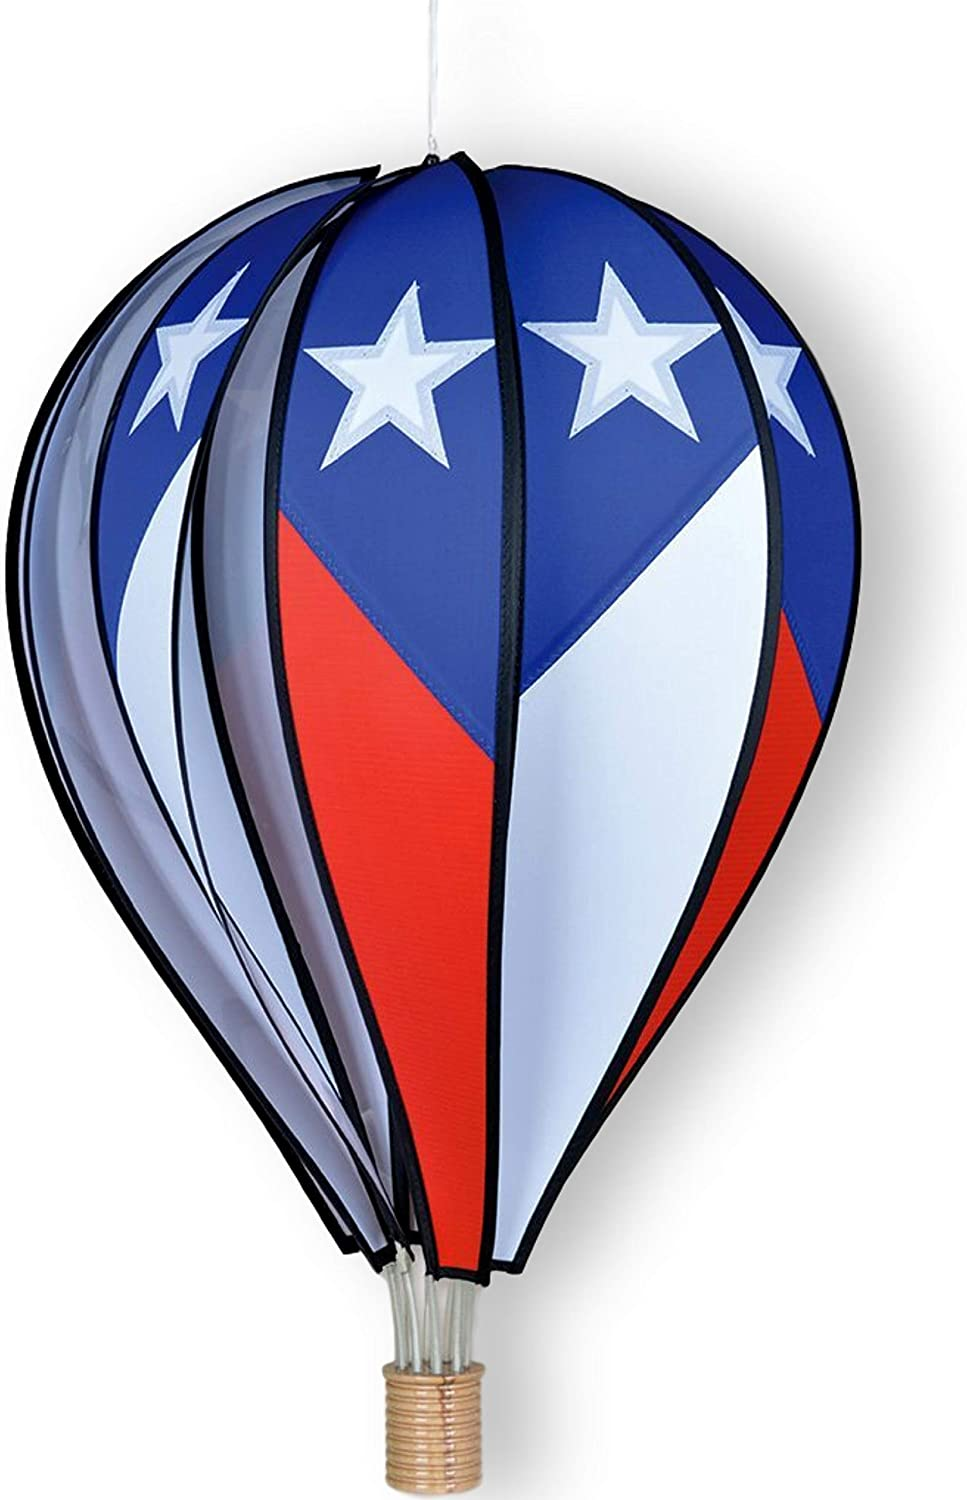 Premier Kites Hot Air Balloon Wind Spinner 26 Inch 10 Panel Hanging Spinning Balloon Decoration Quality Large Wind Spinner For Yard And Garden Patriotic Balloon Hot Air Balloon Wind Spinners Garden Outdoor Amazon Com